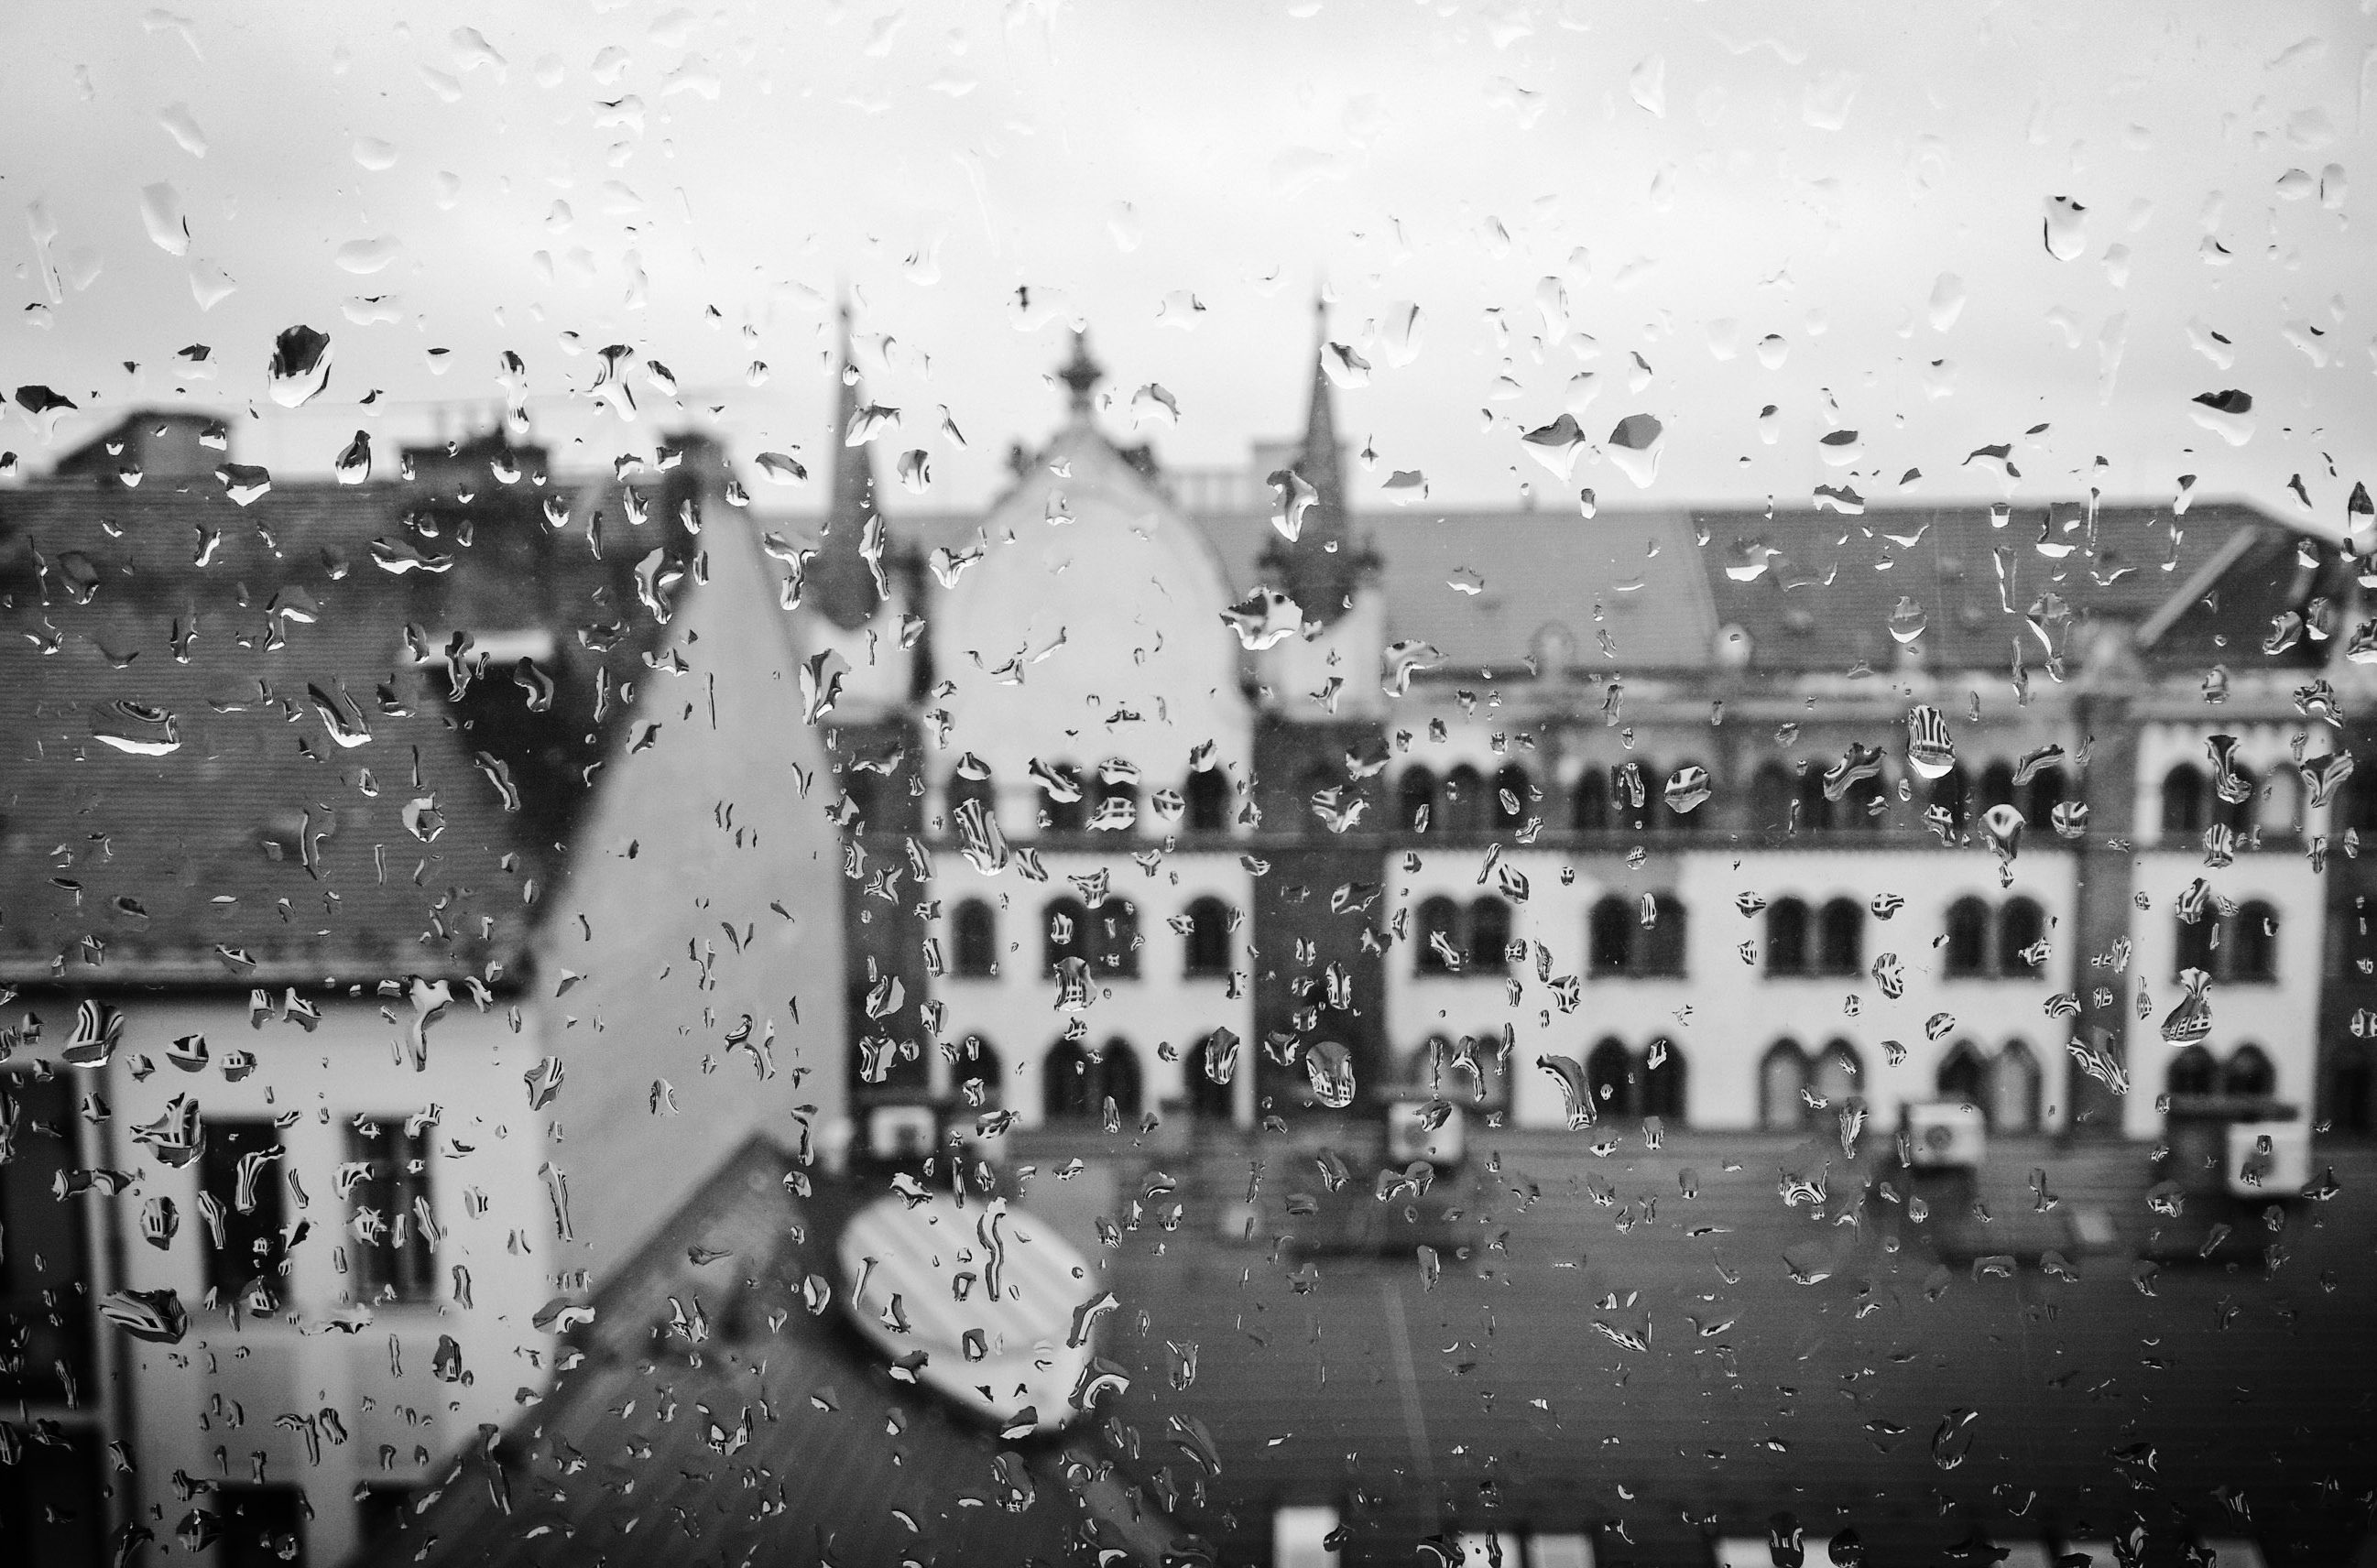 Rainy window looking out over city buildings